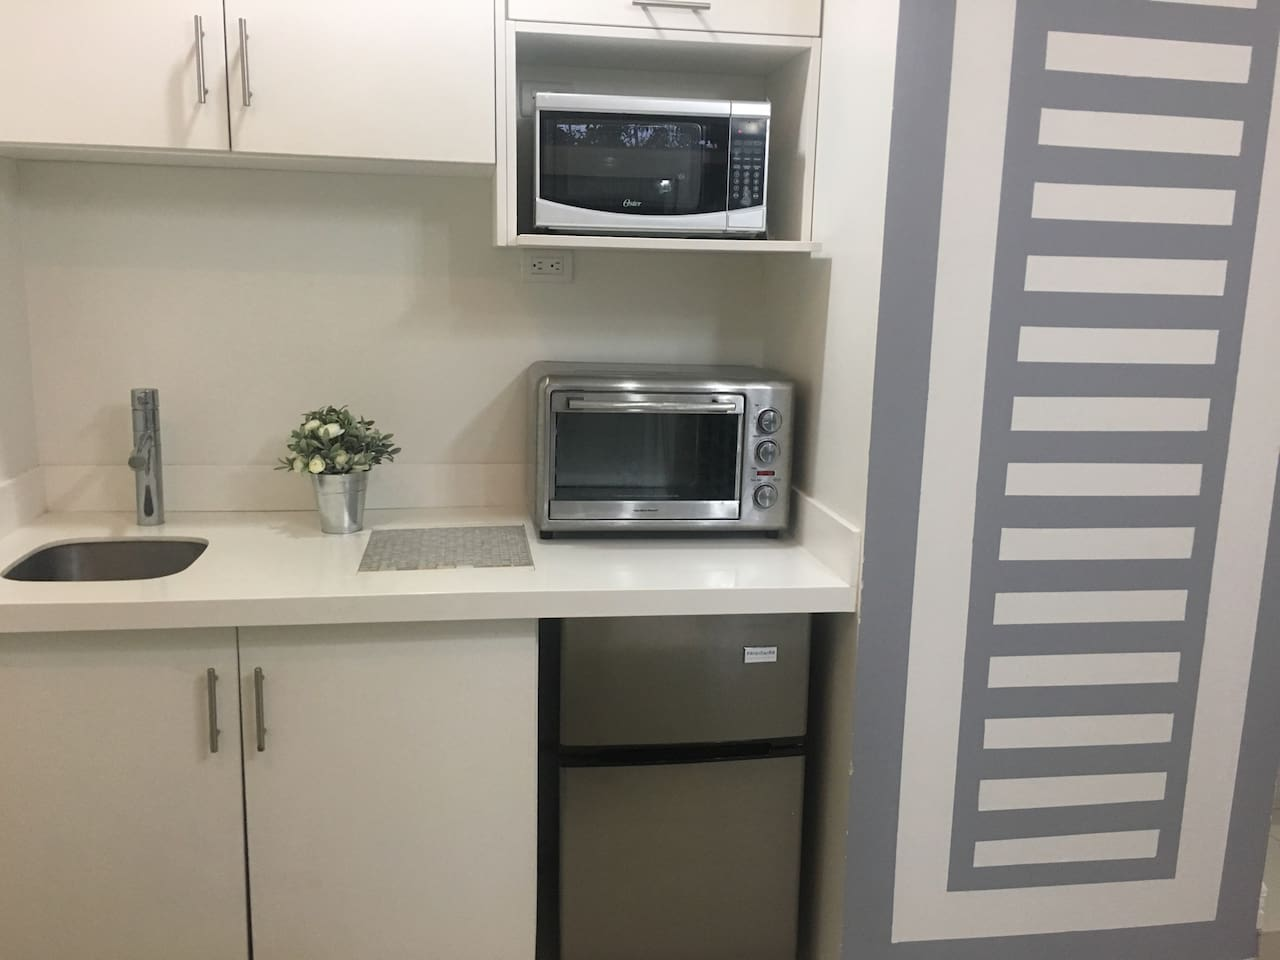 Kitchen full equipped: small kitchen, small fridge, microwave, coffee maker, toaster.